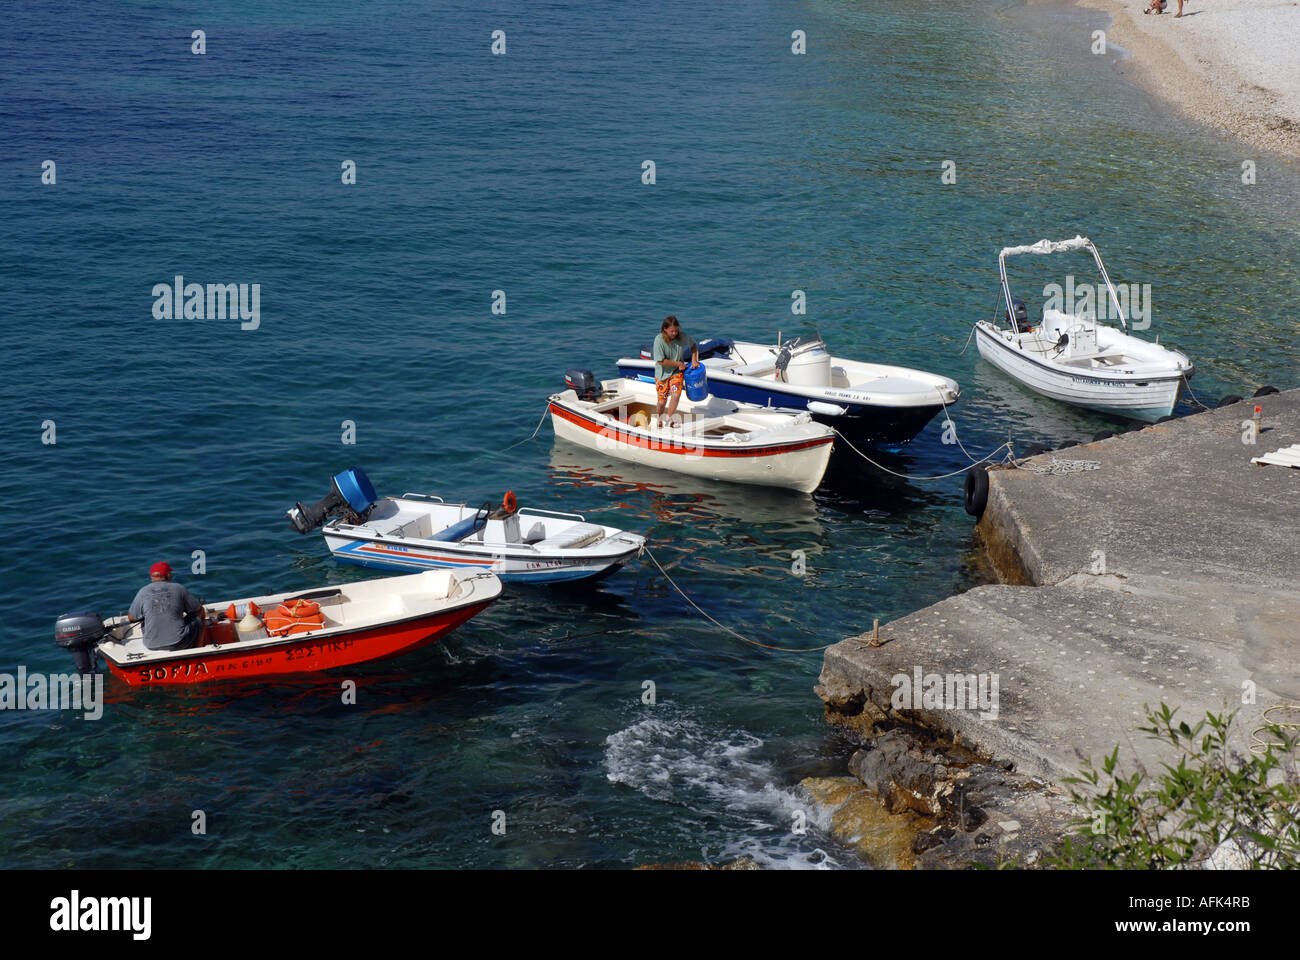 Five small boats with outboard motors moored to jetty and being prepared for hire - Stock Image